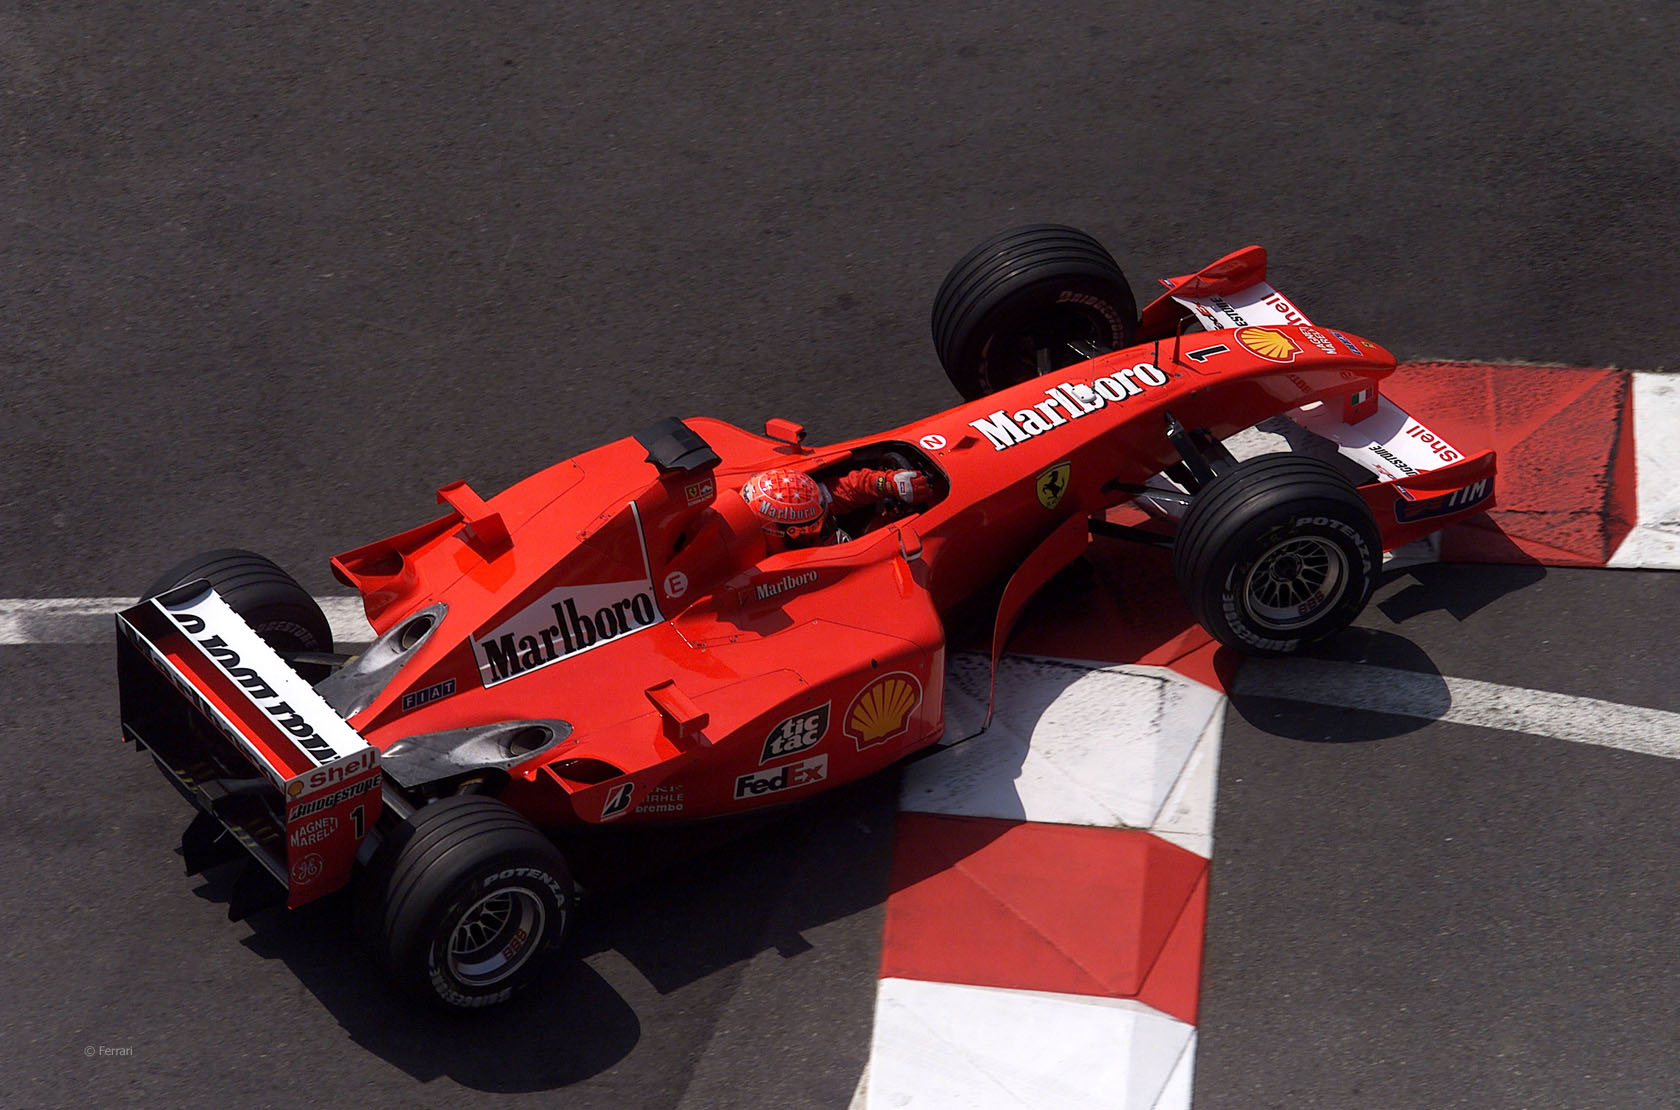 ferrari f2001 michael schumacher - photo #7